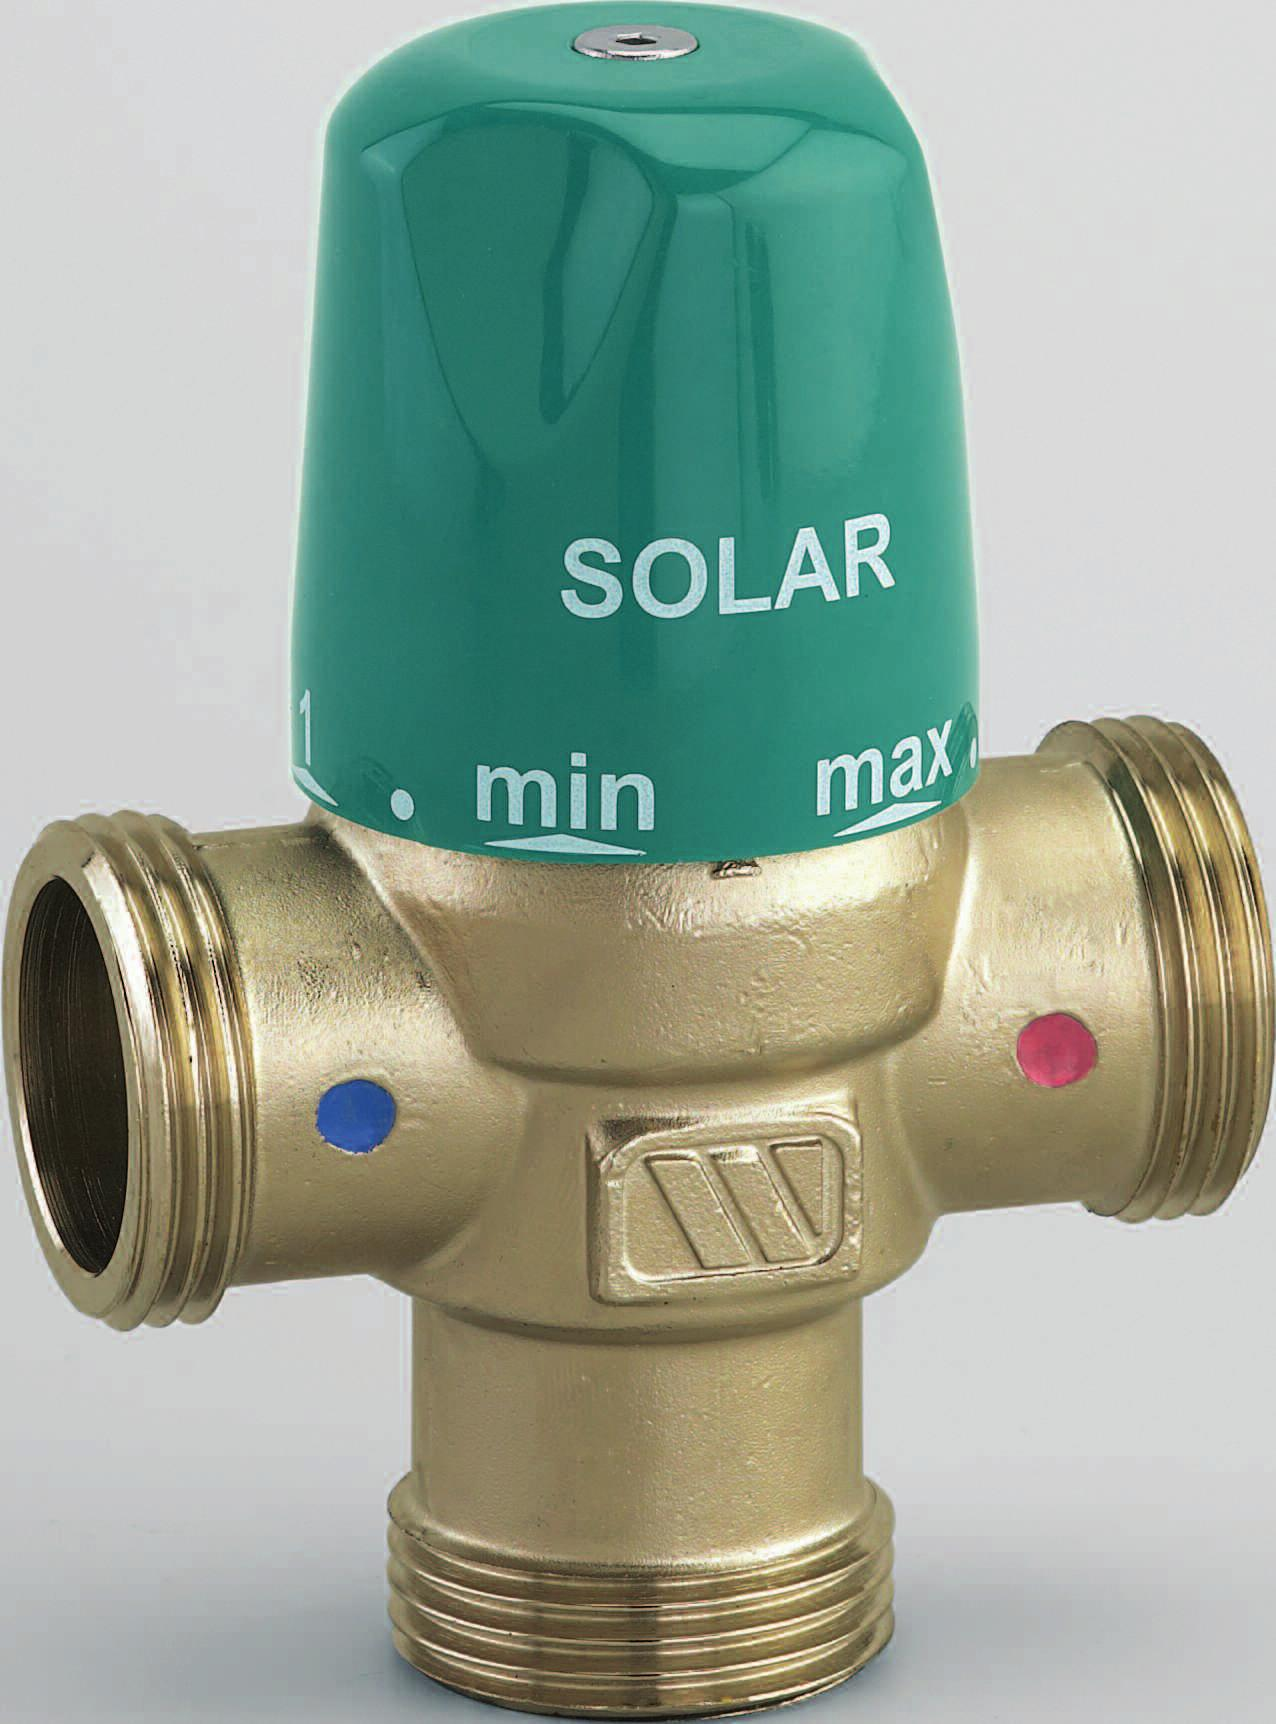 'Thermostatic mixing valve MMV-S for solar systems'